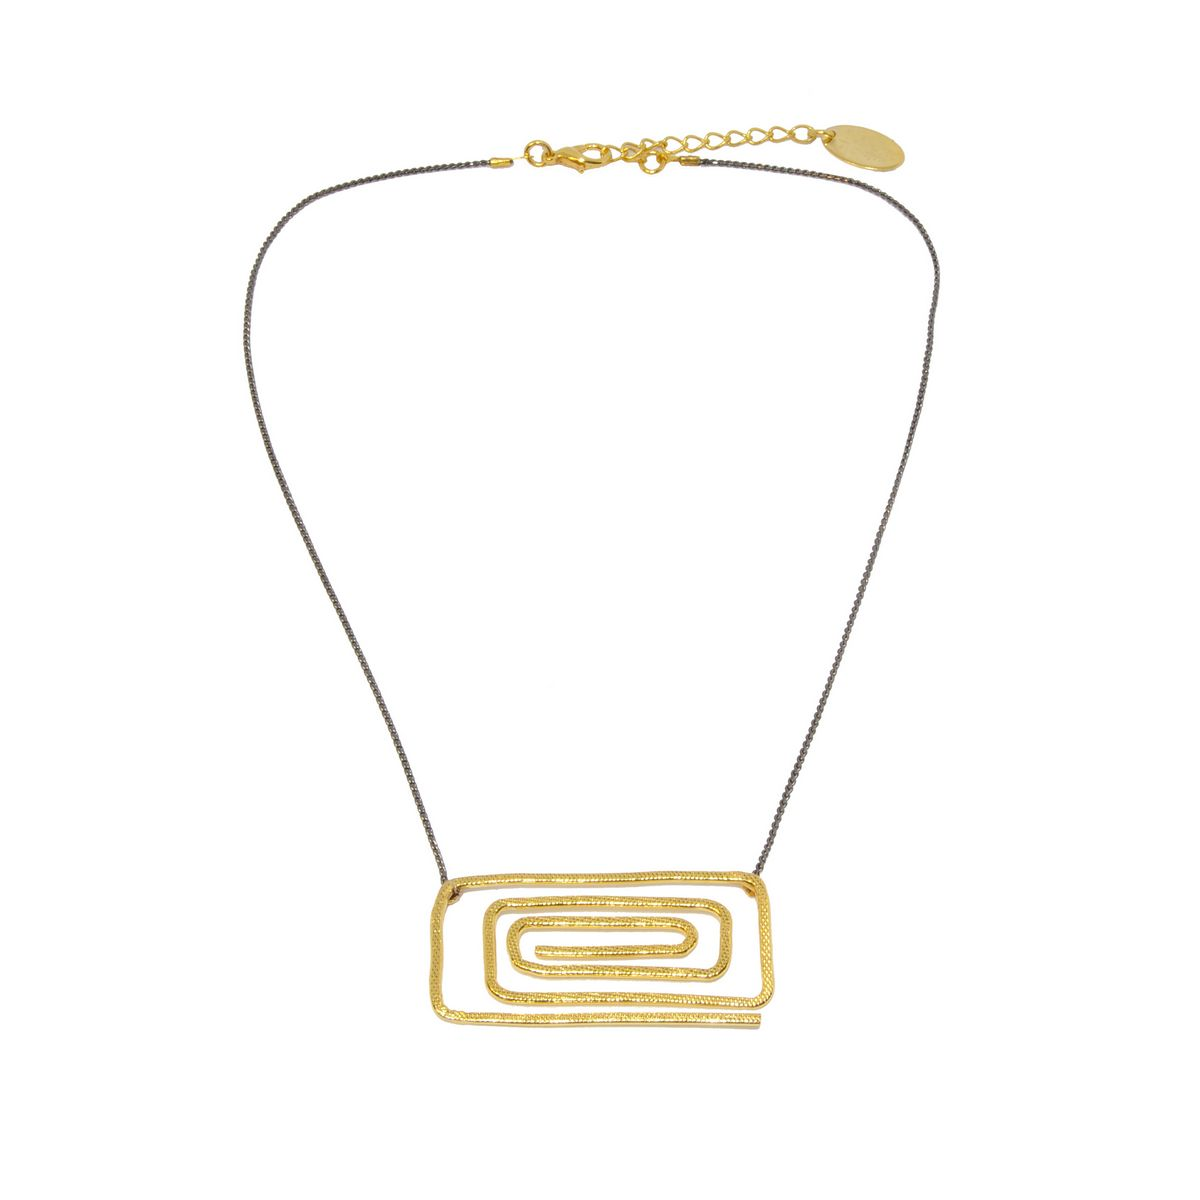 Necklace A4355-Gold- plated